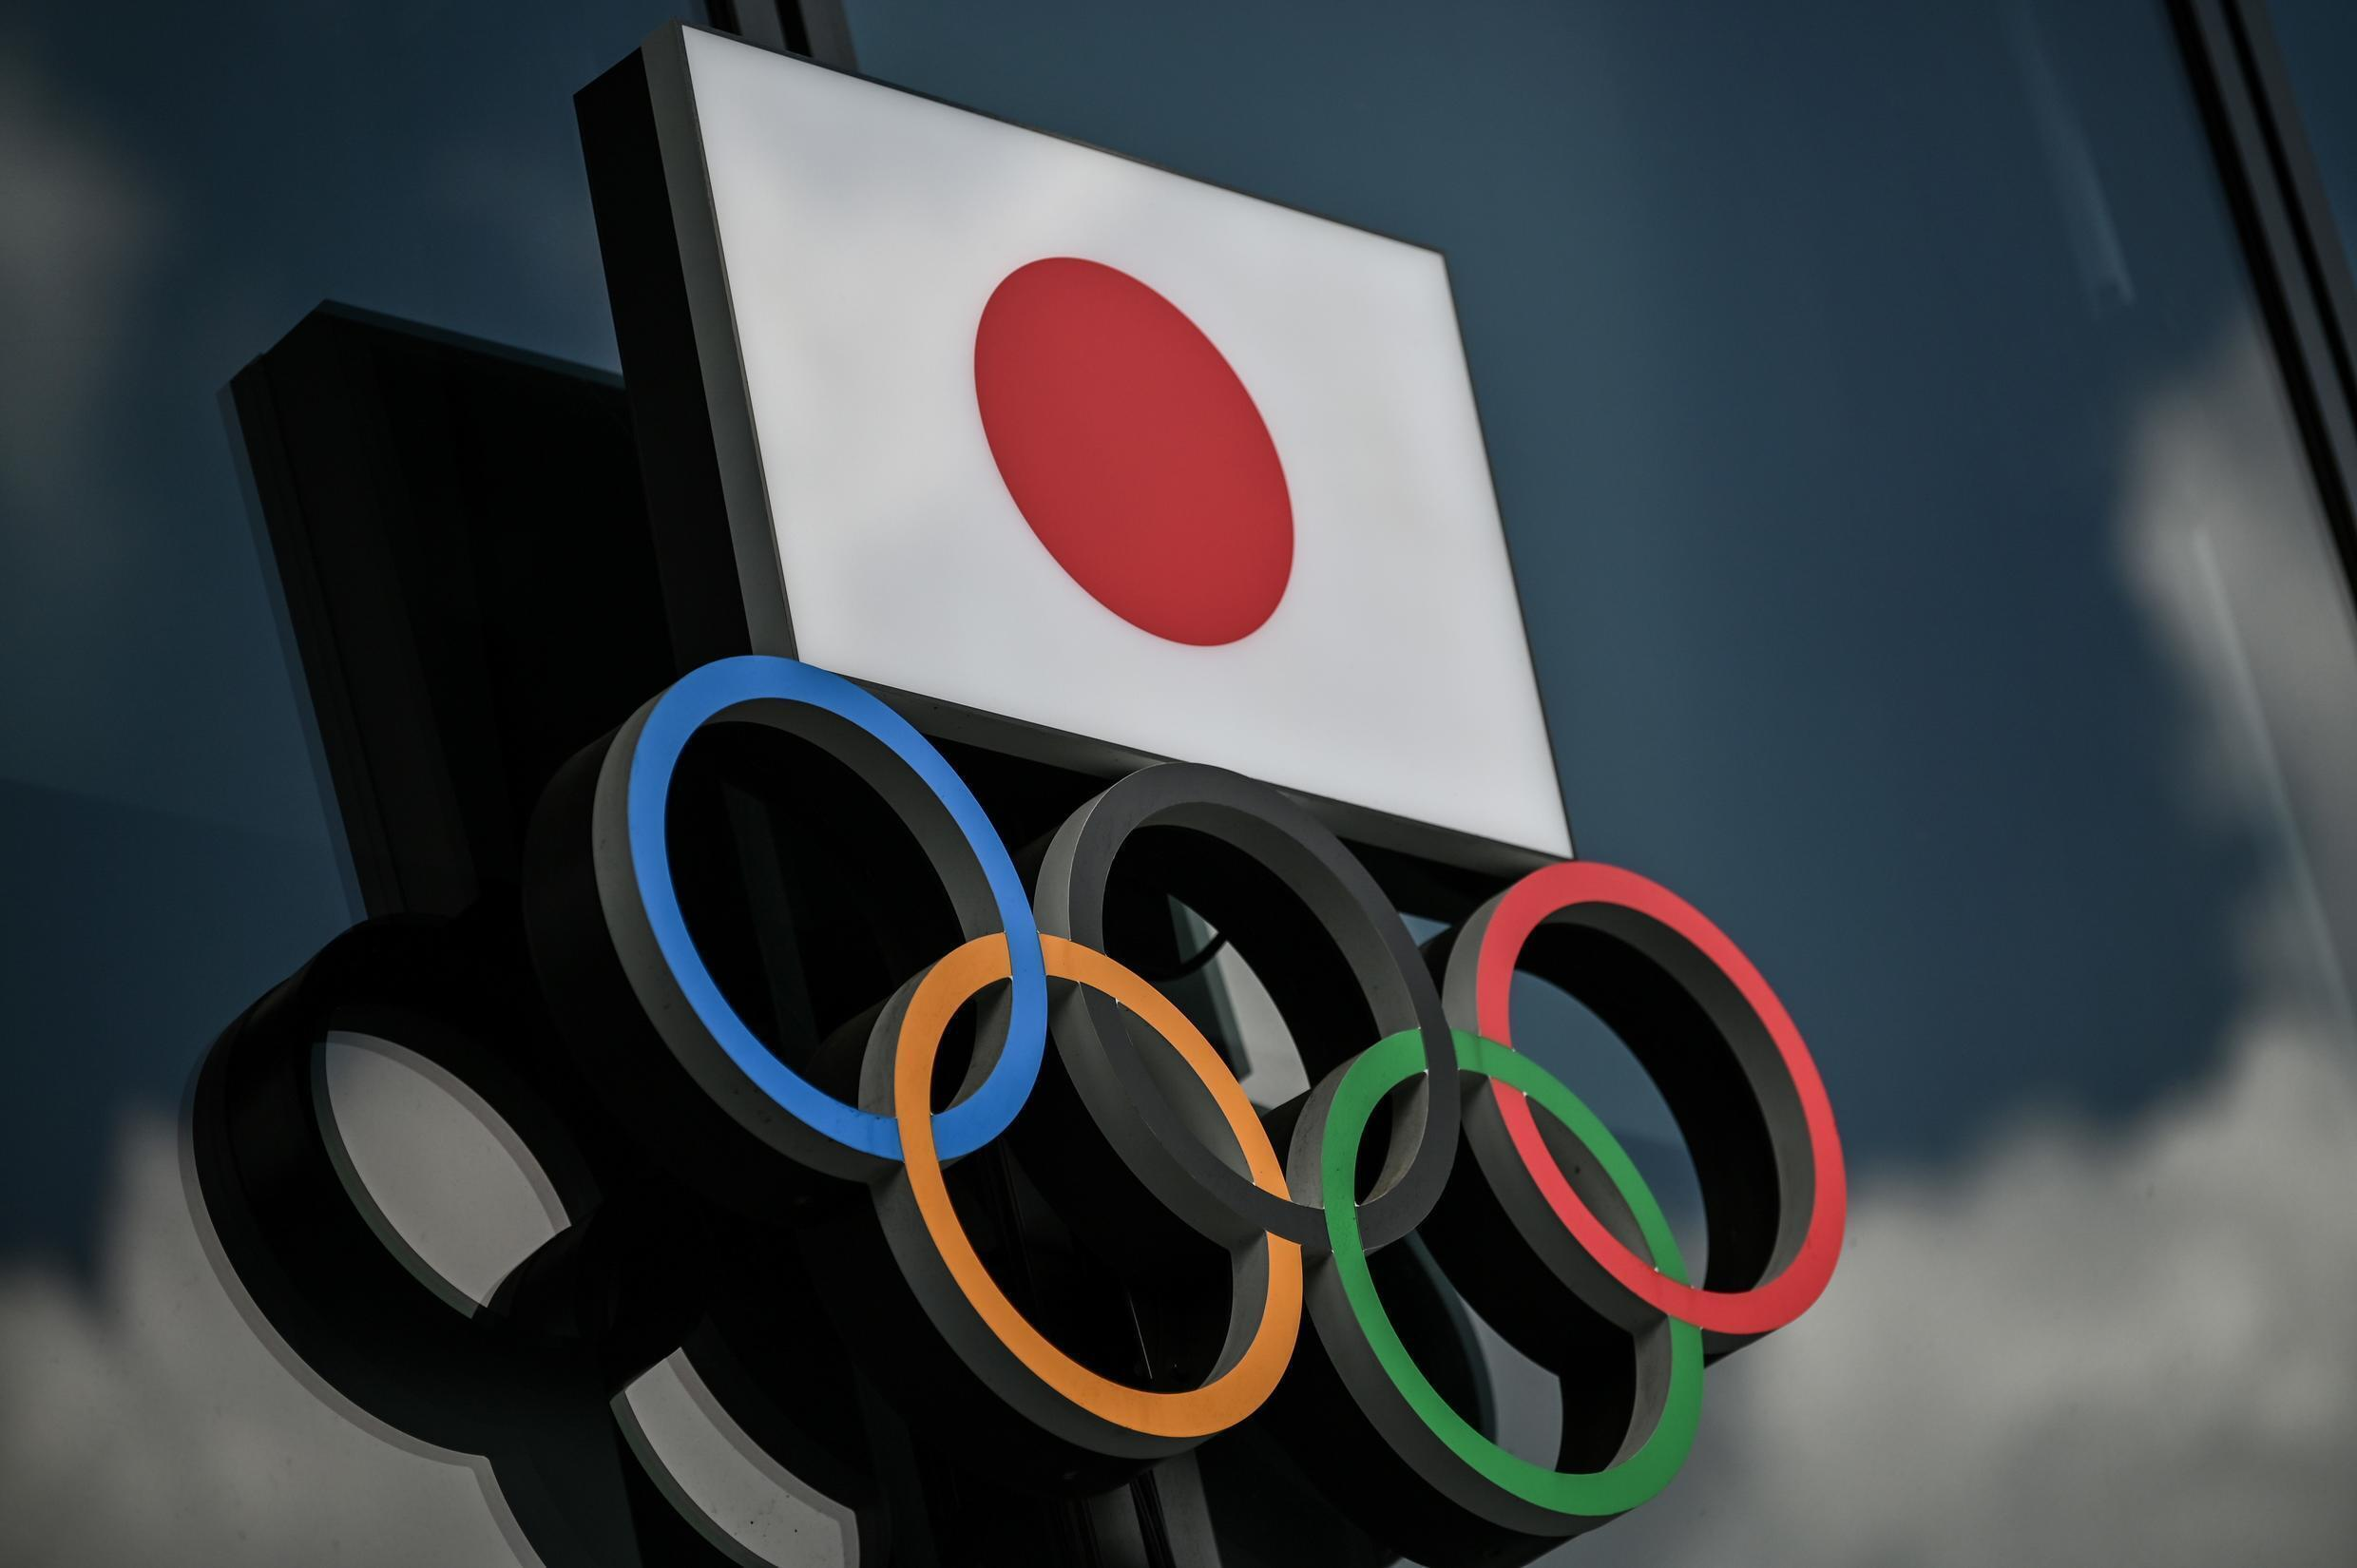 The Tokyo 2020 Olympics have been postponed by a year over the coronavirus, an unprecedented decision